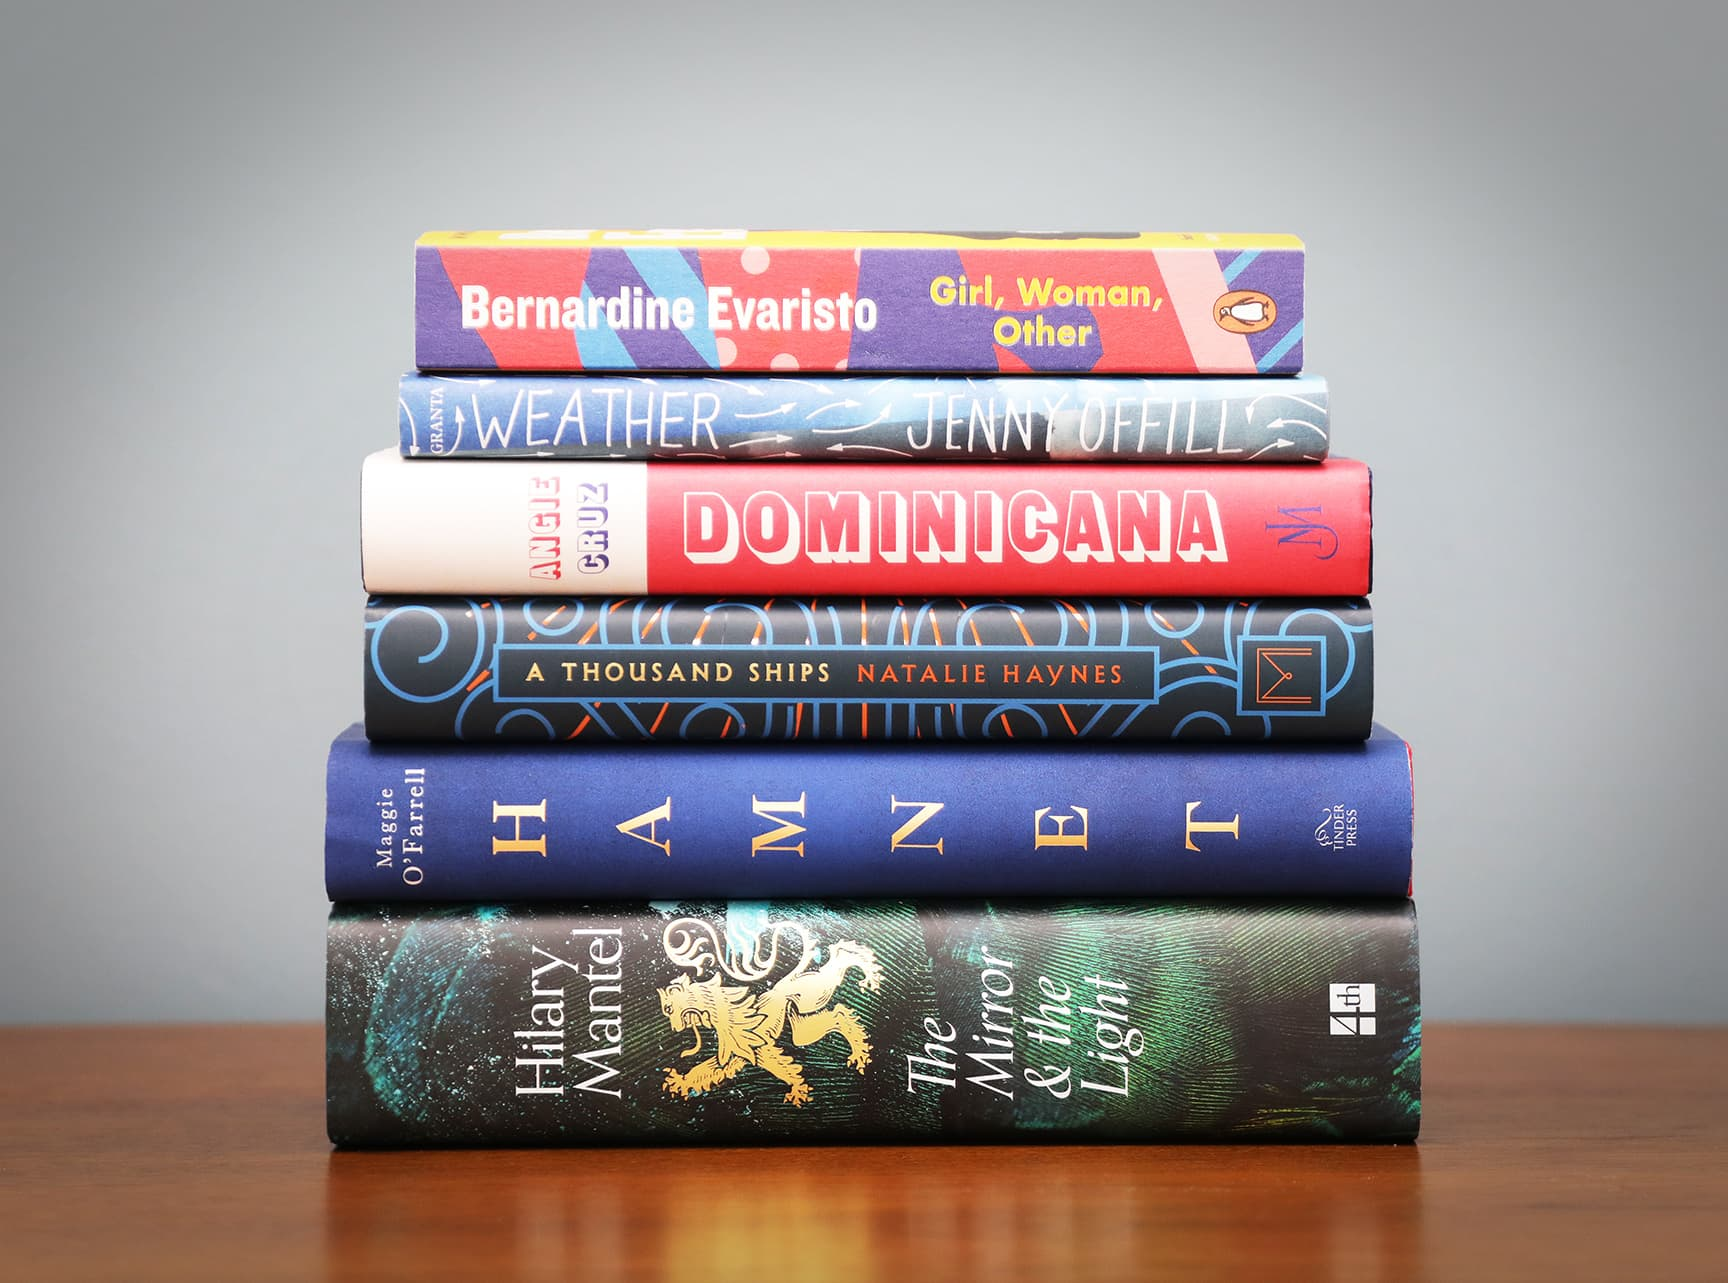 Photo of the Women's Prize 2020 Shortlist for the writing activities article